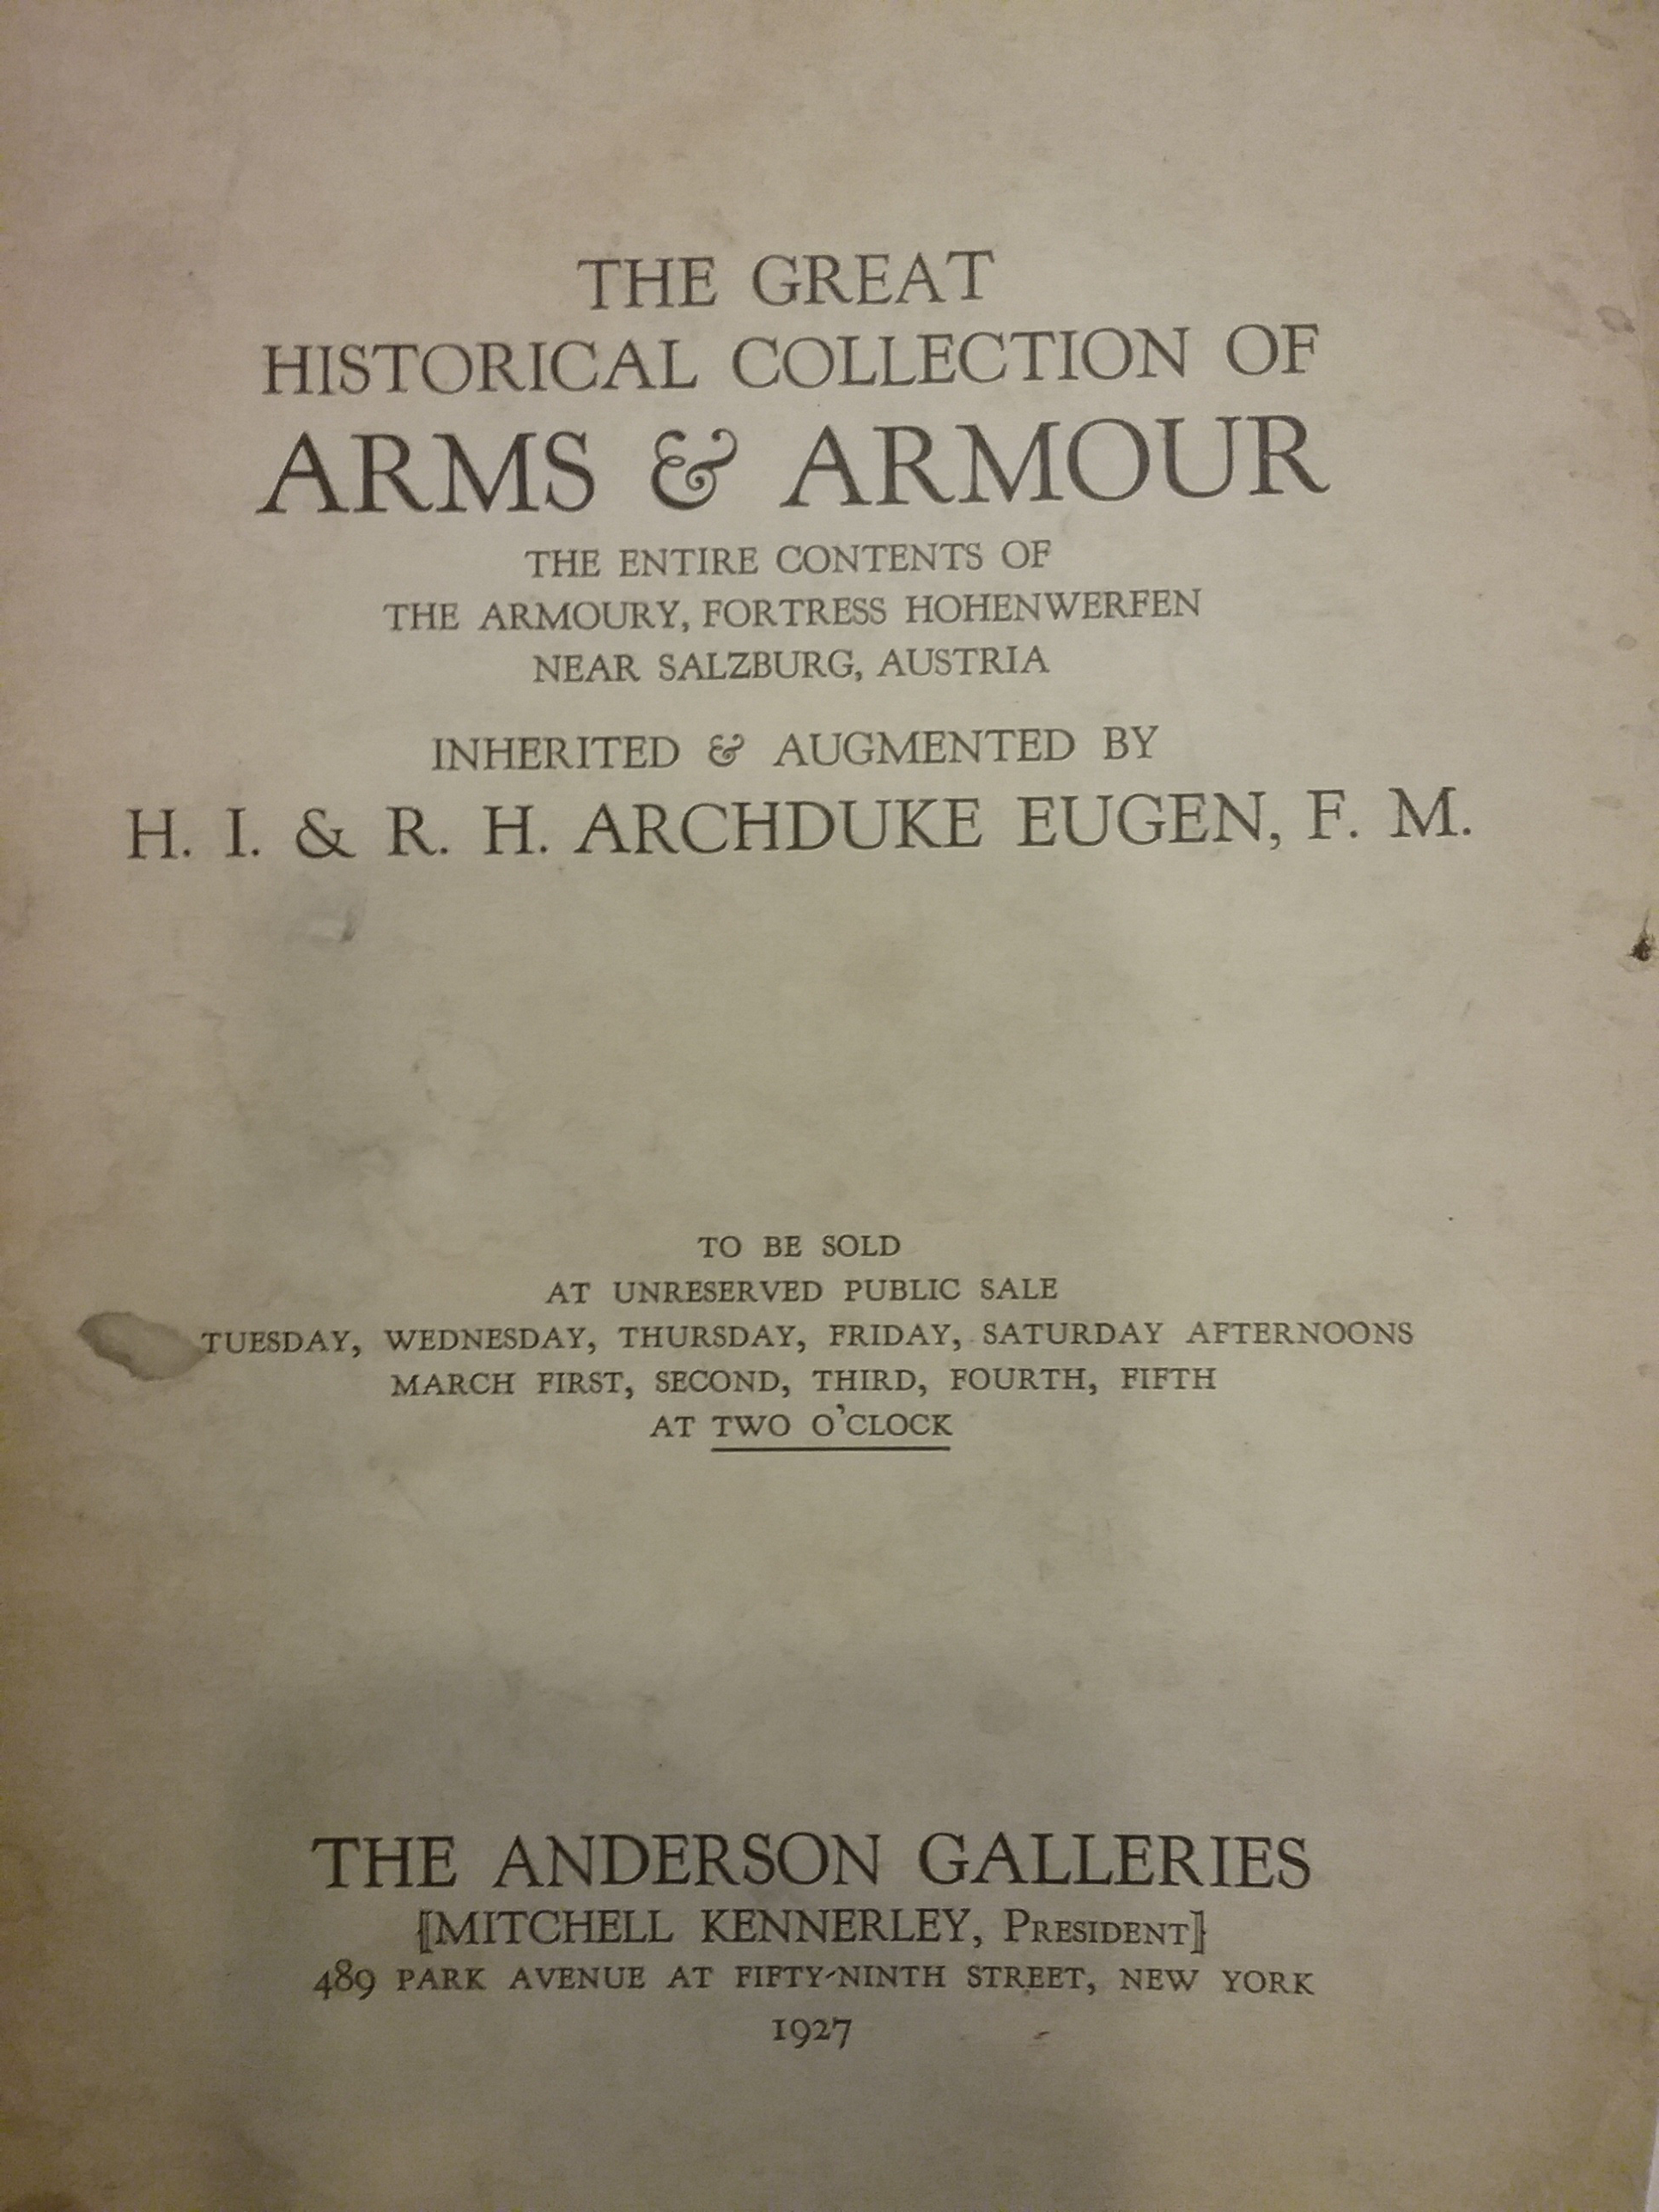 An early art auction catalog from the HMA collection